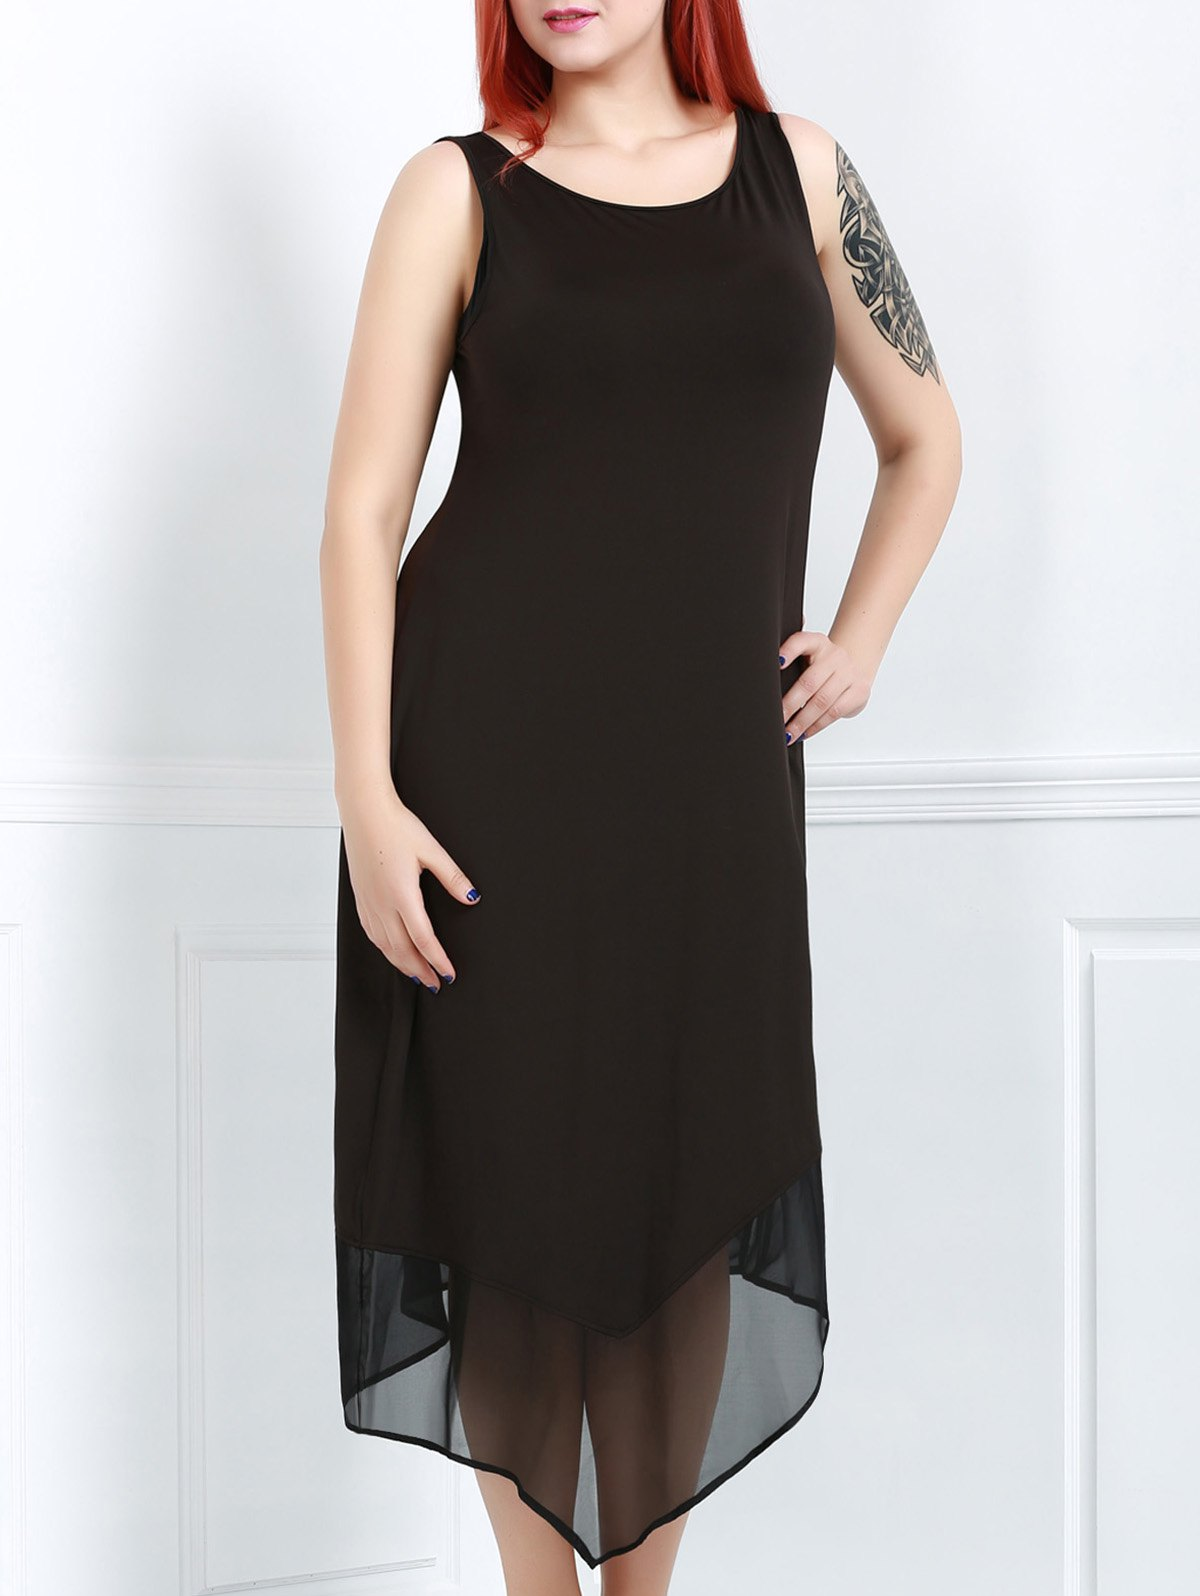 Simple Black Round Collar Sleeveless Dress For Women - BLACK 3XL